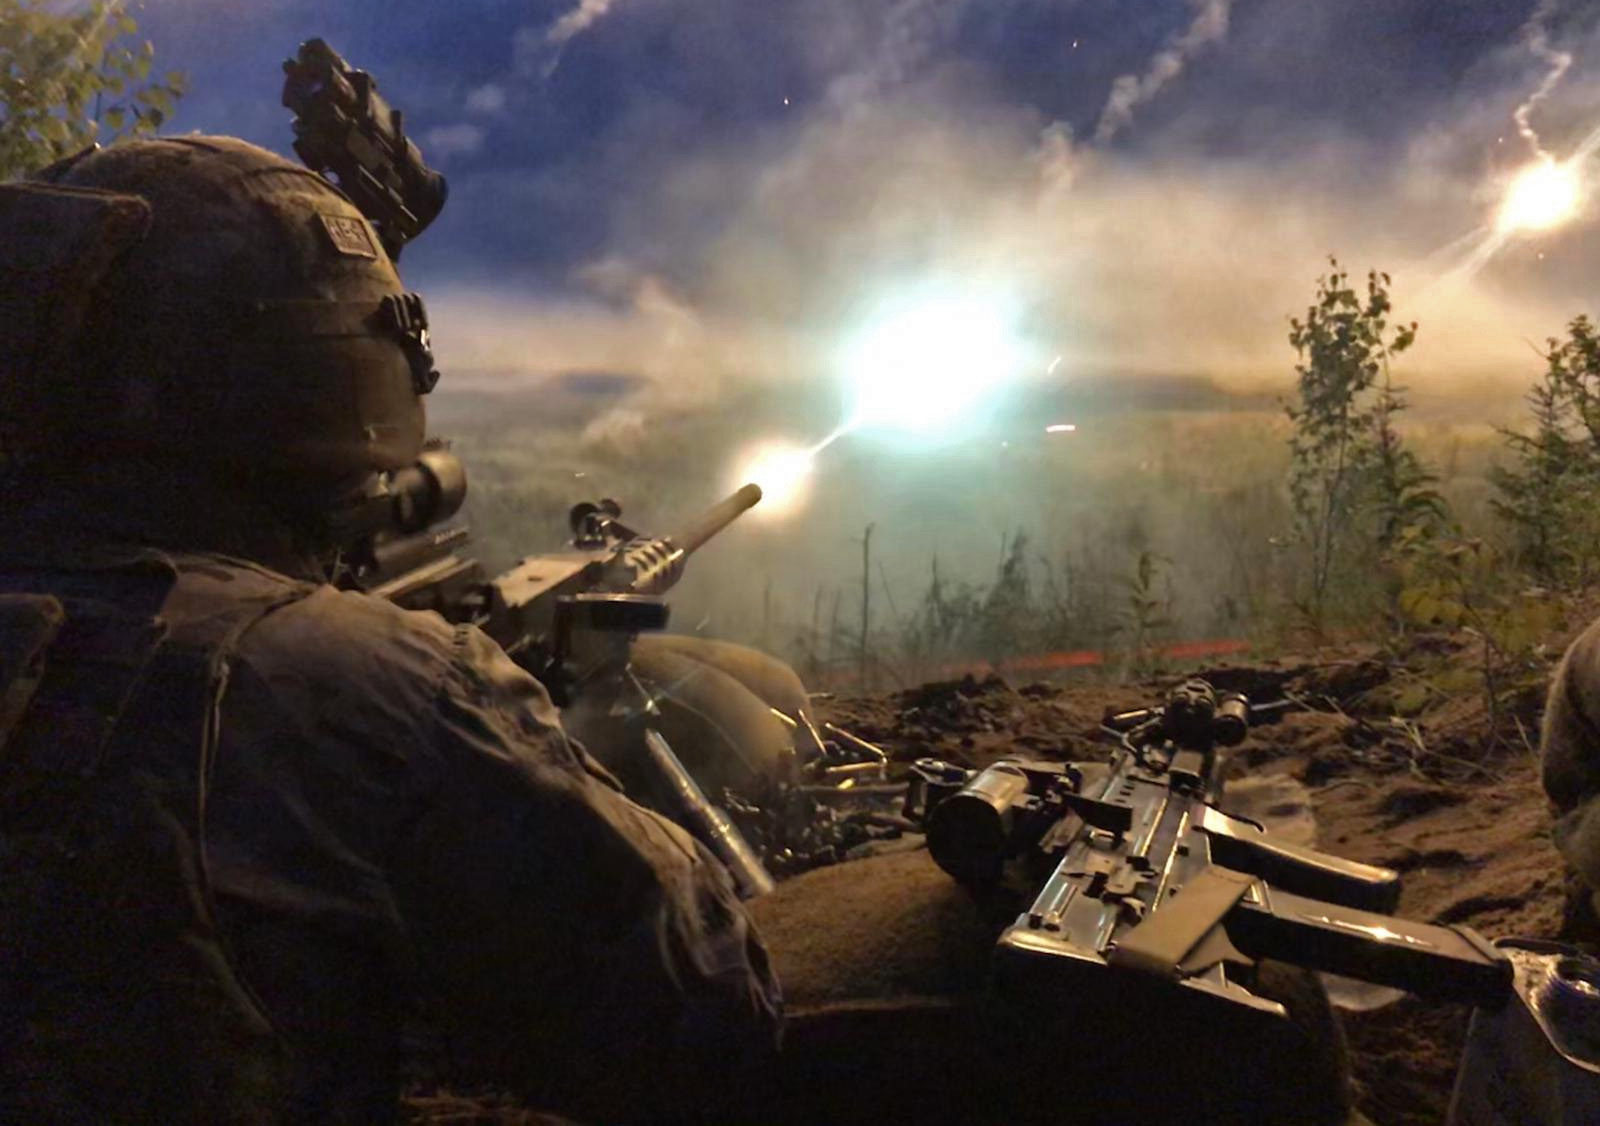 A 45 Commando Royal Marine firing a 50 calibre heavy machine gun in Estonia on Exercise Baltic Protector .